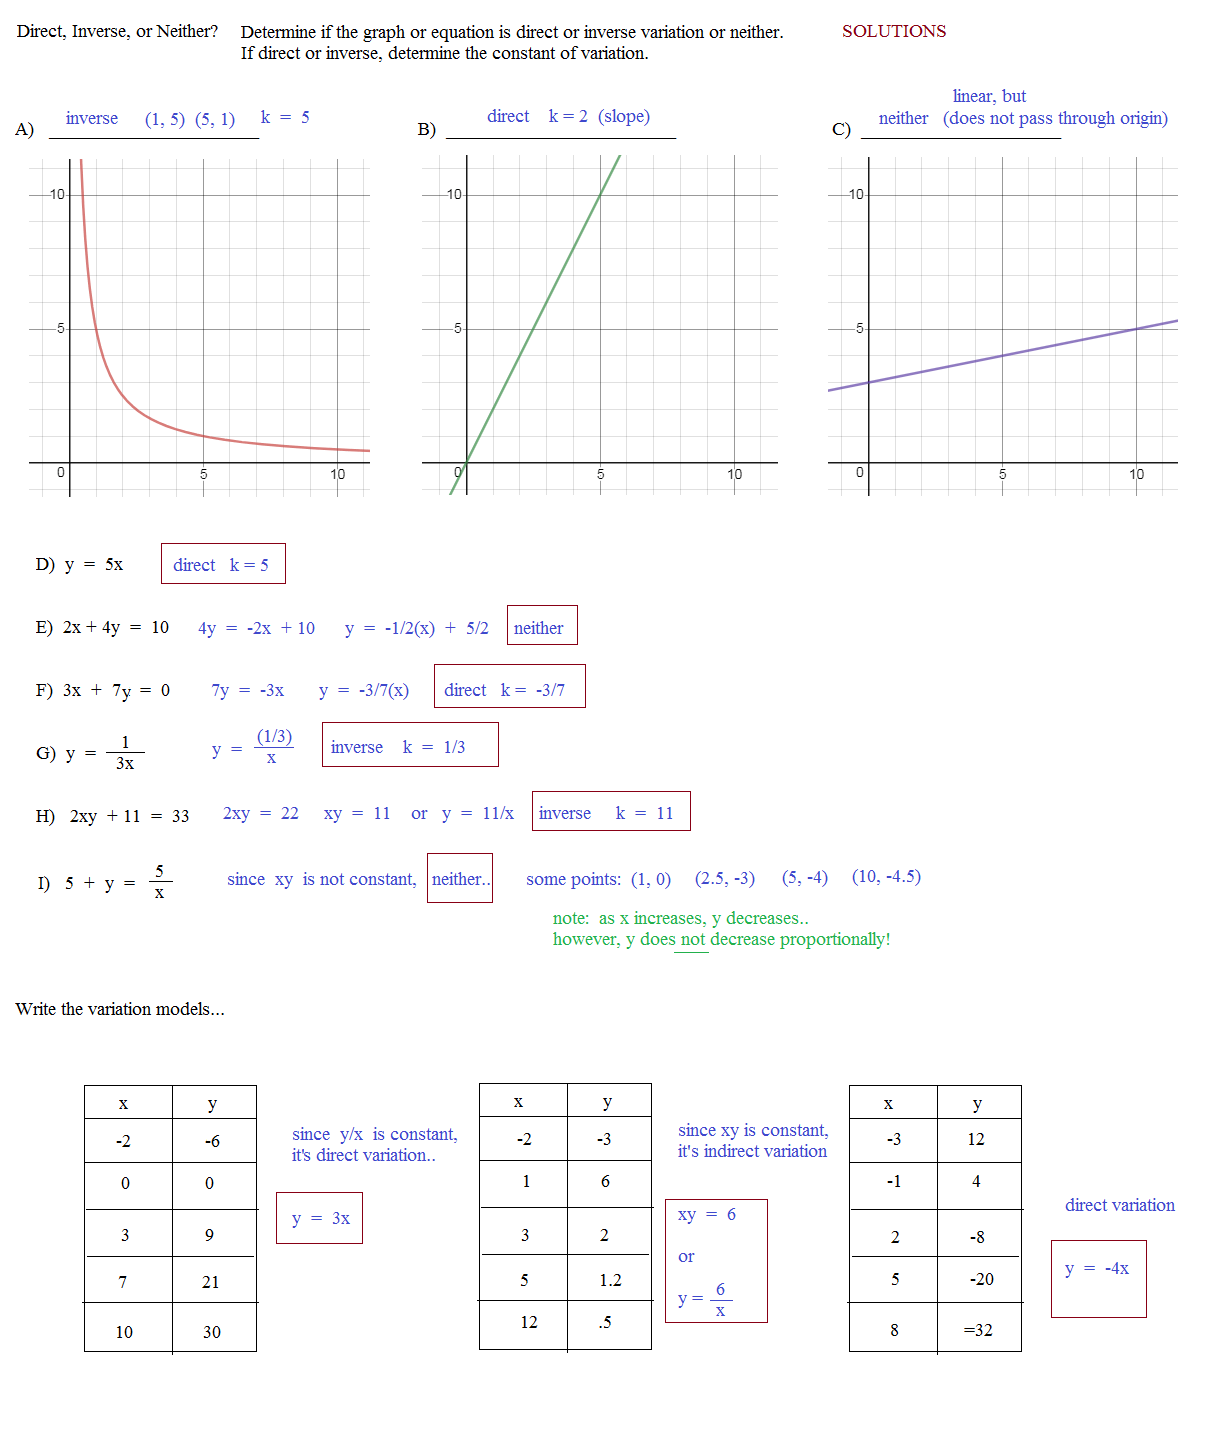 Geic Variation Worksheet